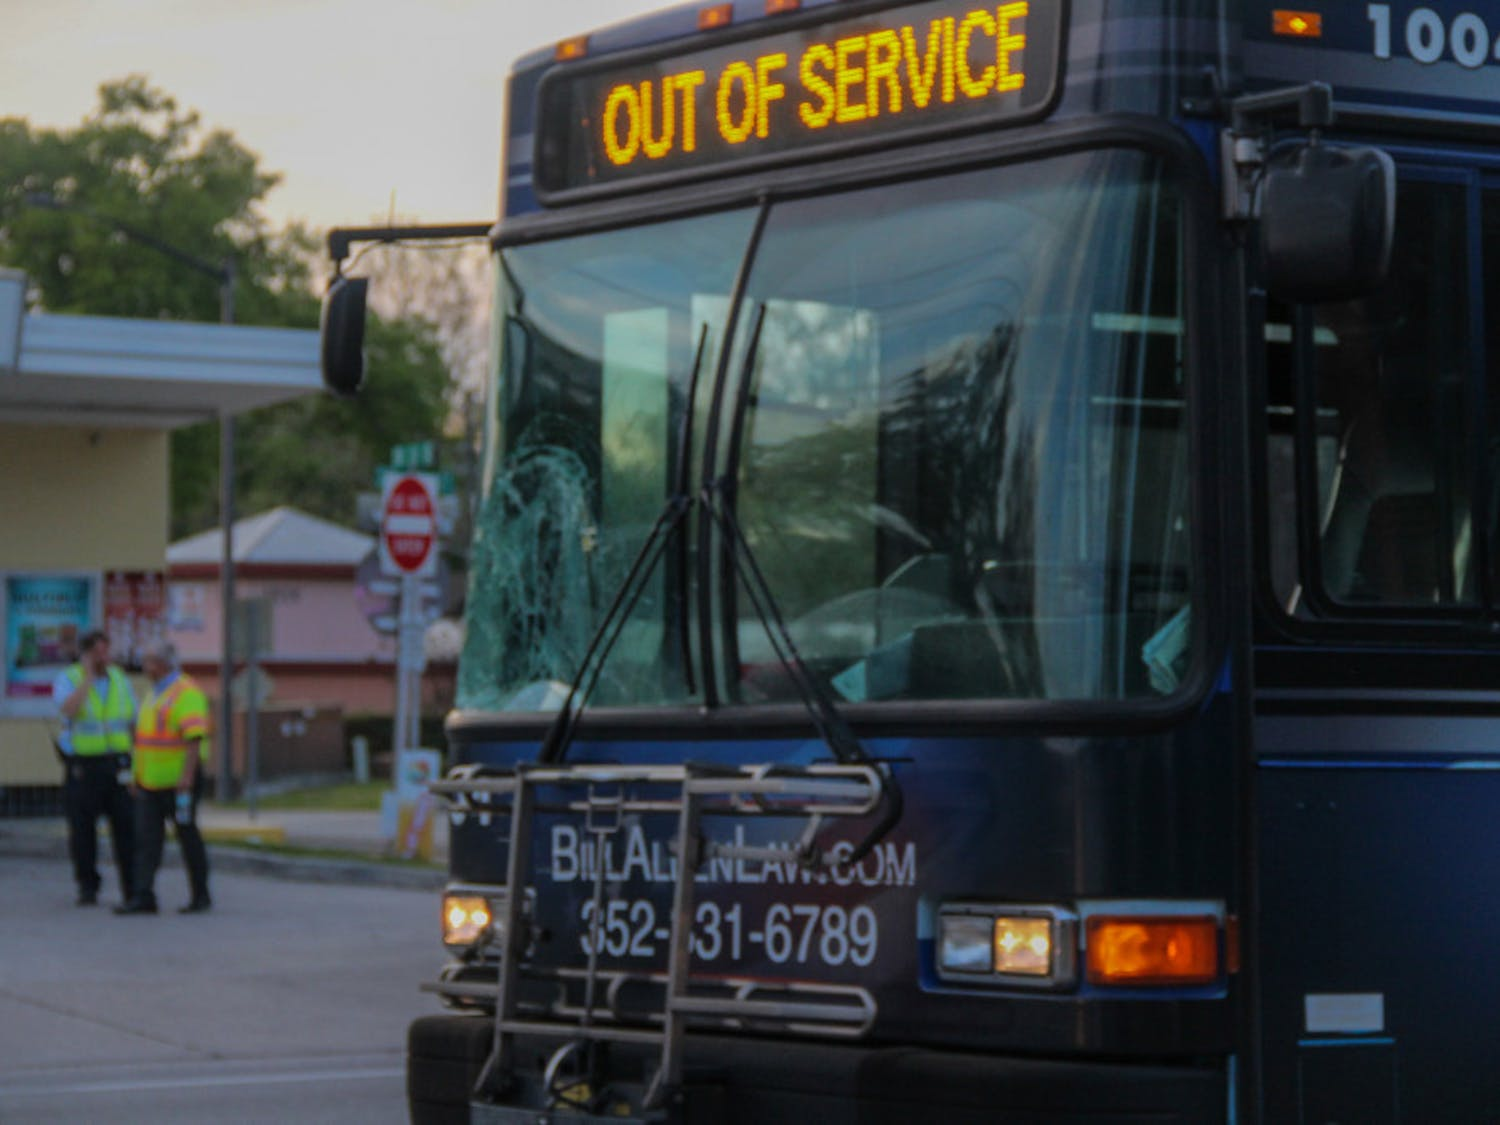 An unidentified man was struck by an RTS bus Tuesday evening and taken to UF Health Shands in critical condition. The bus was unable to avoid the pedestrian who walked into oncoming traffic, according to Rosanna Passaniti, city spokesperson.